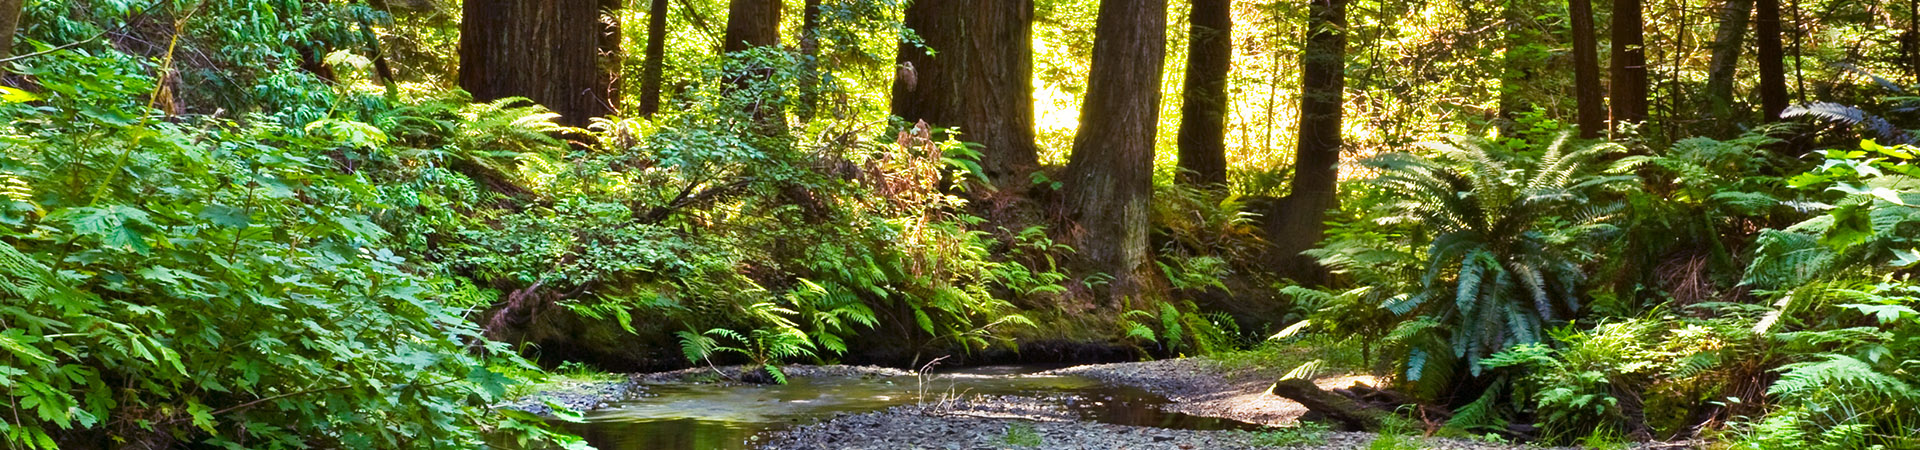 Mendocino Redwood Forest and Stream